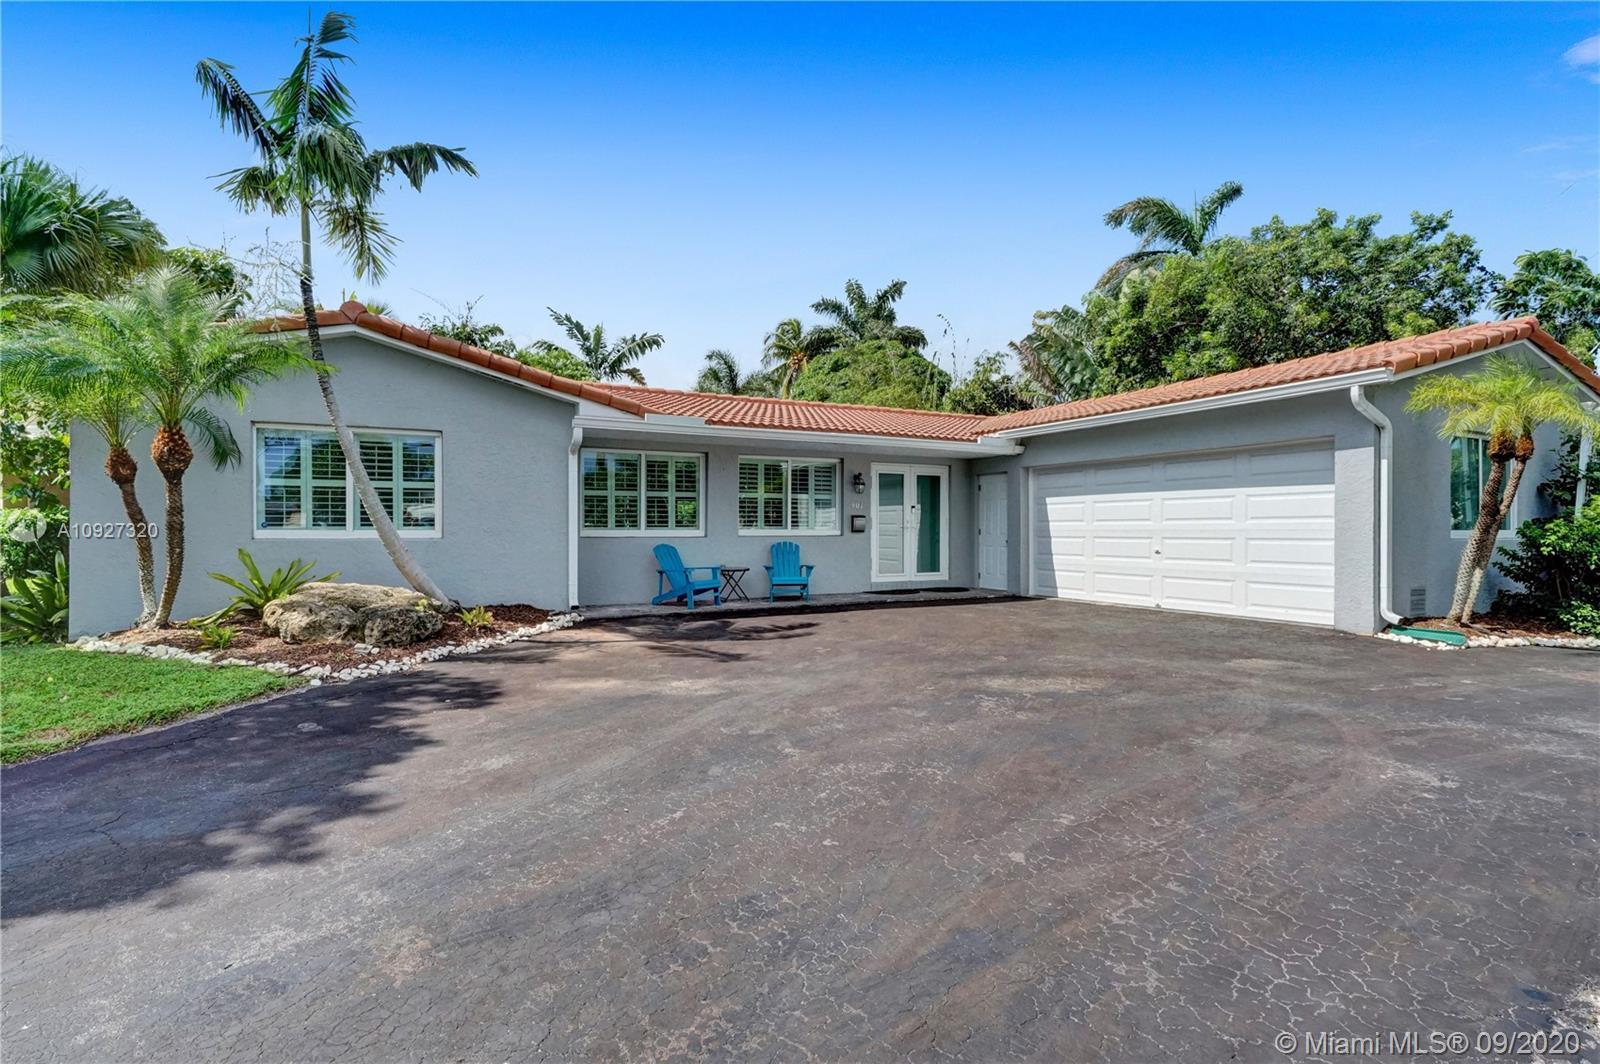 Rarely available home located in Ft Lauderdale's Citrus Isles with  Ocean Access and No Fixed Bridge